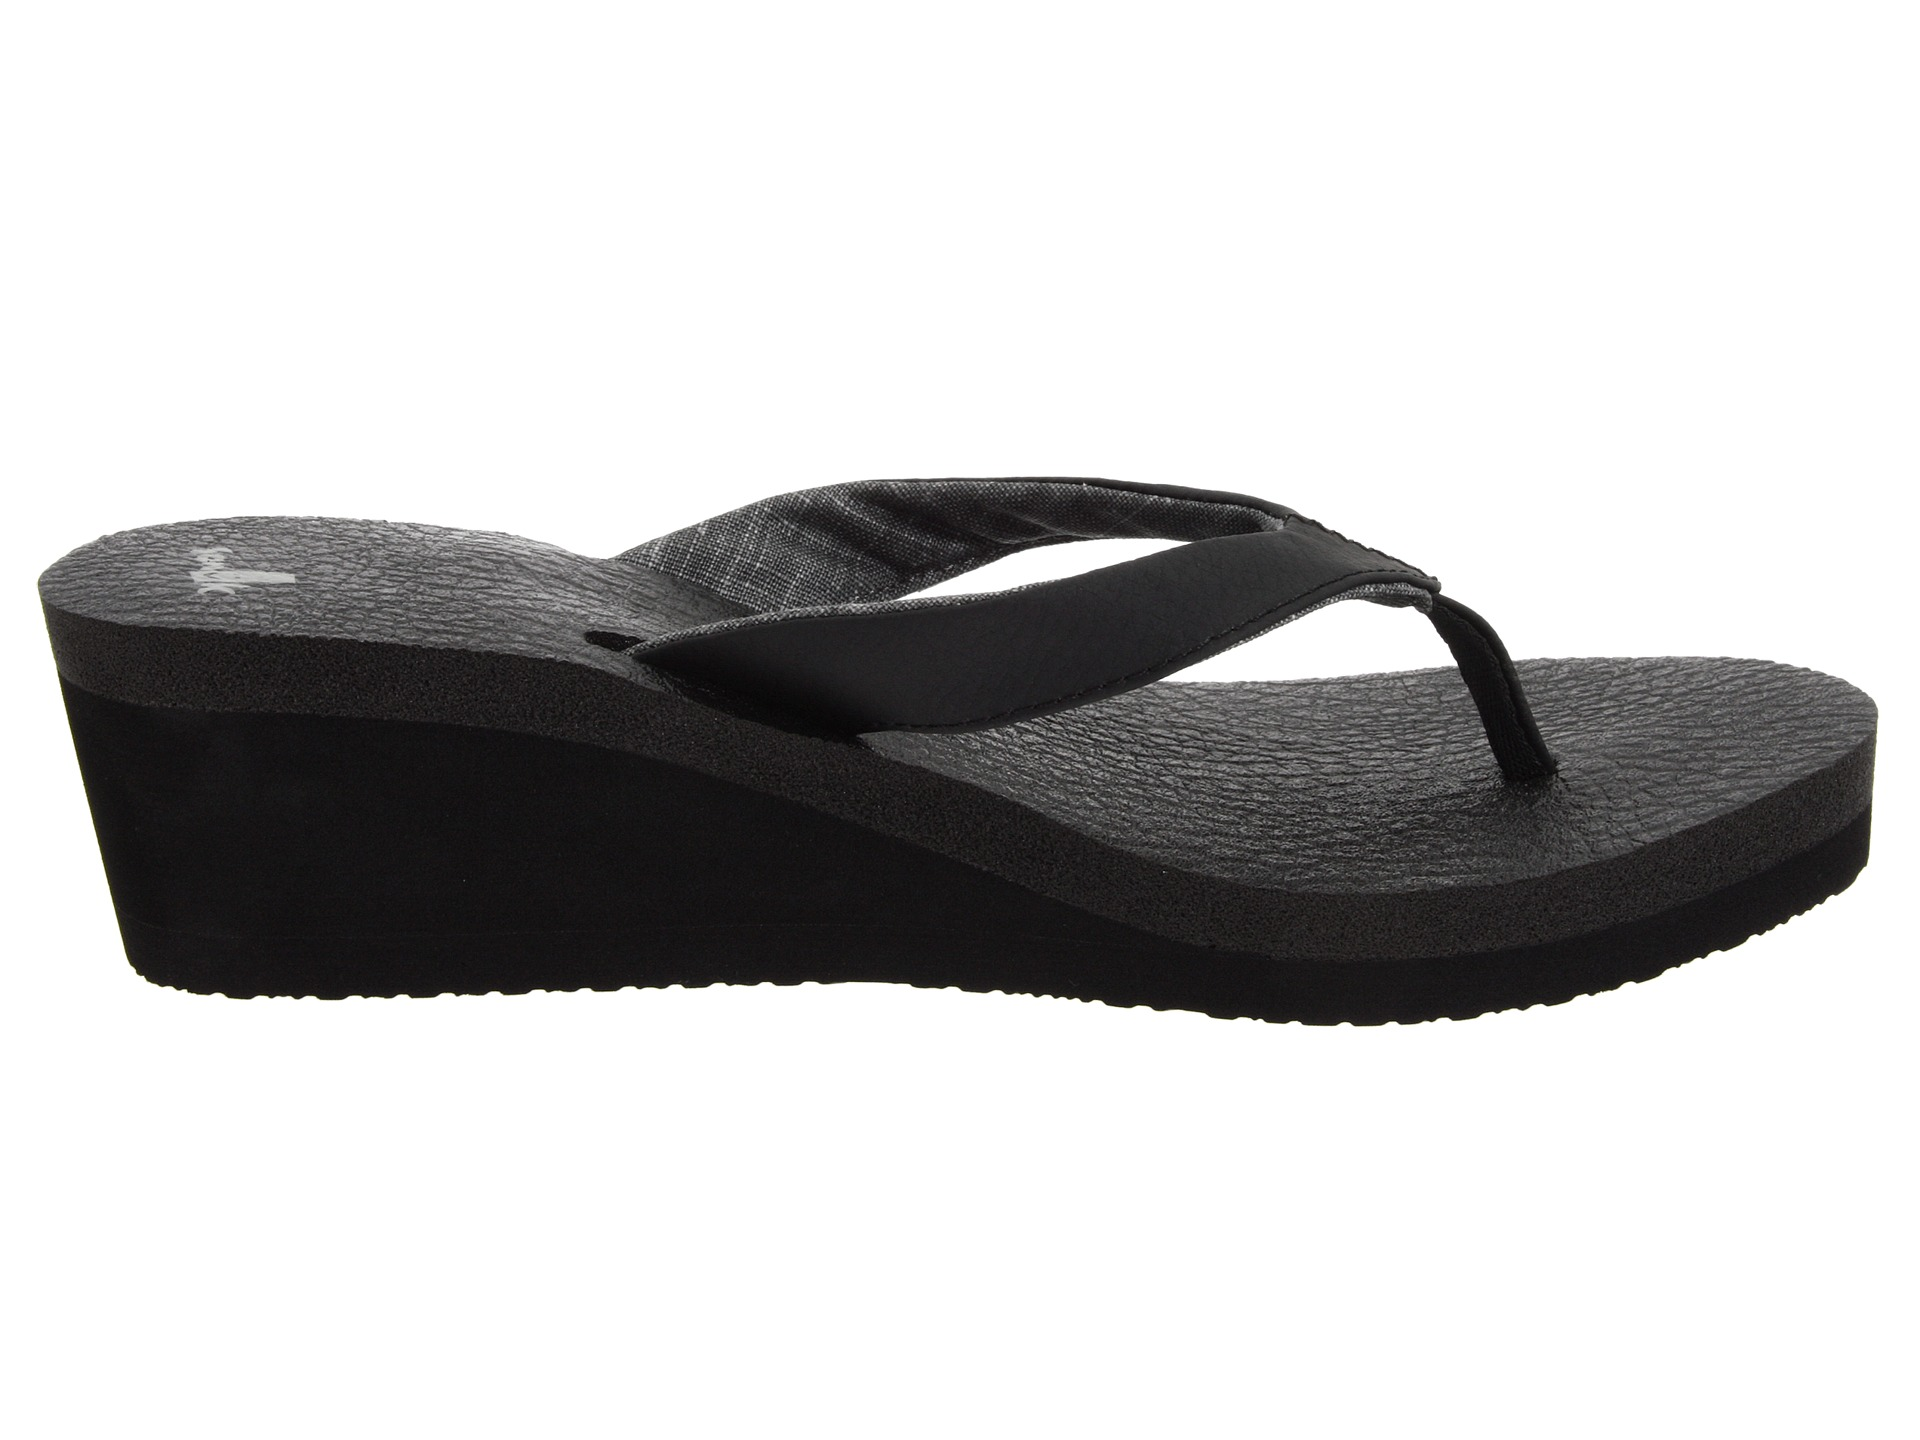 Sanuk Yoga Mat Wedge At Zappos Com